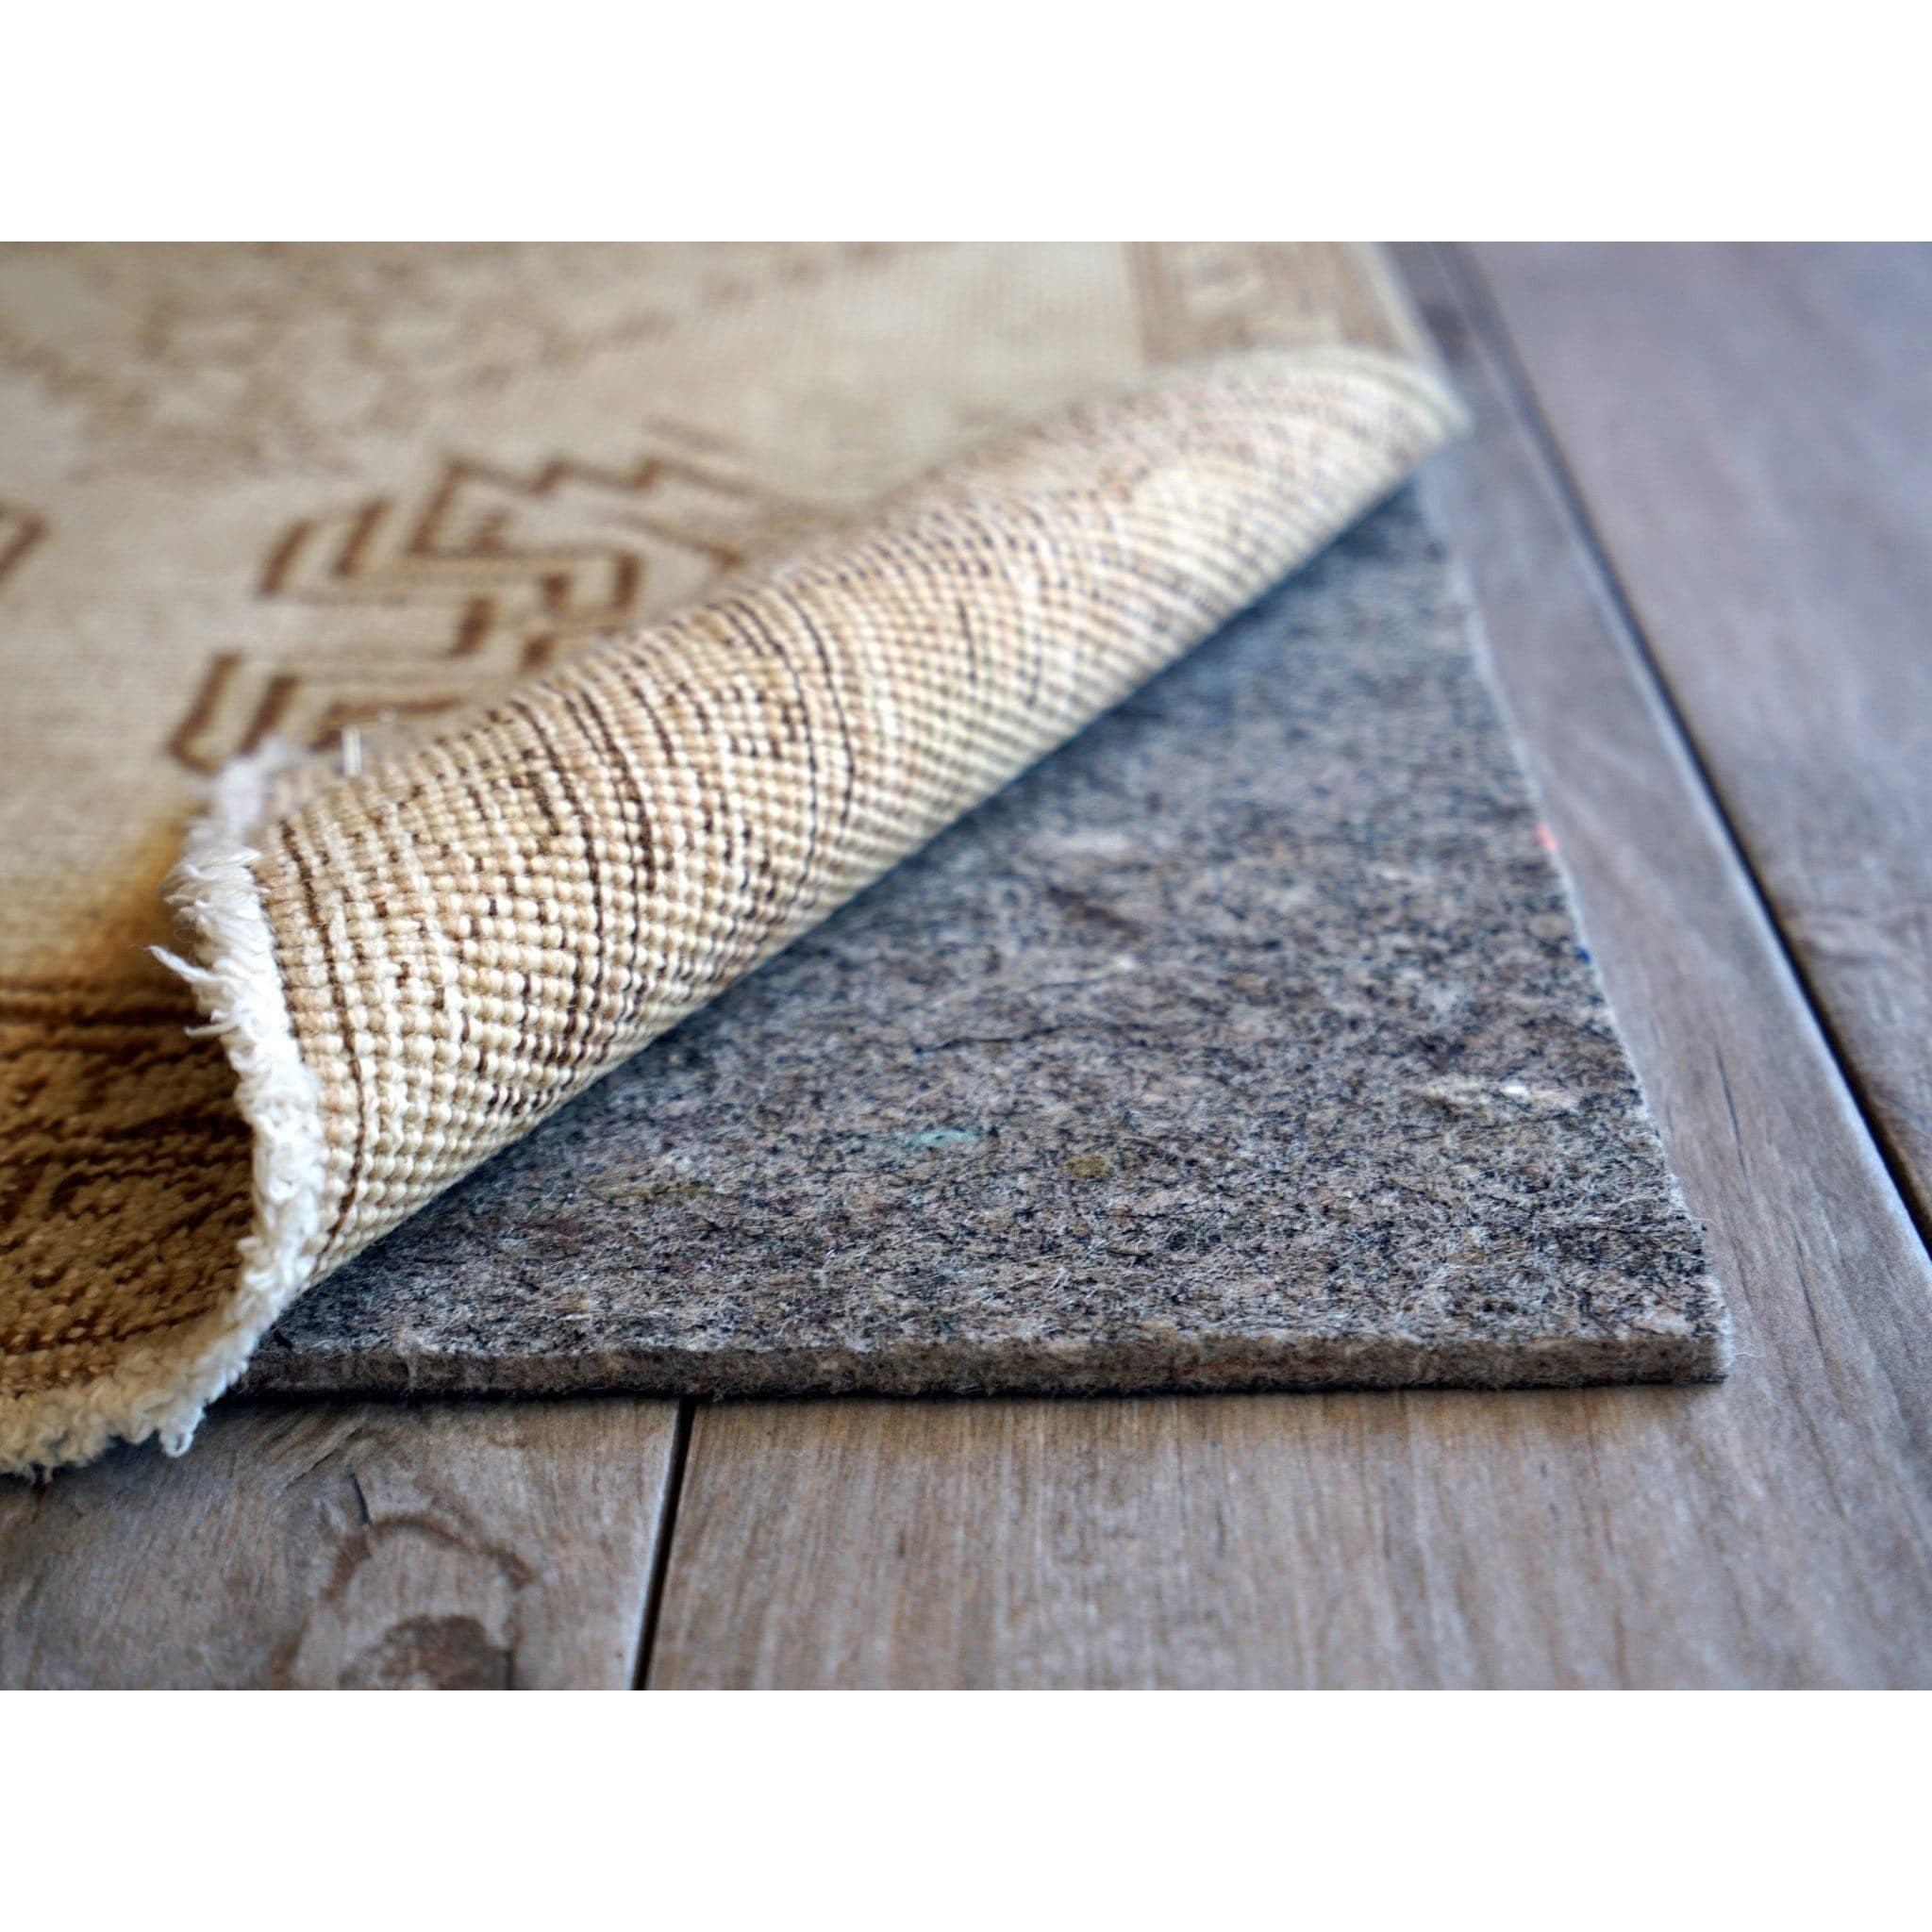 Cushgrip Felt Rubber 1 8 Inch Thick Nonslip Rug Pad 9 X 12 On Free Shipping Today 13397021